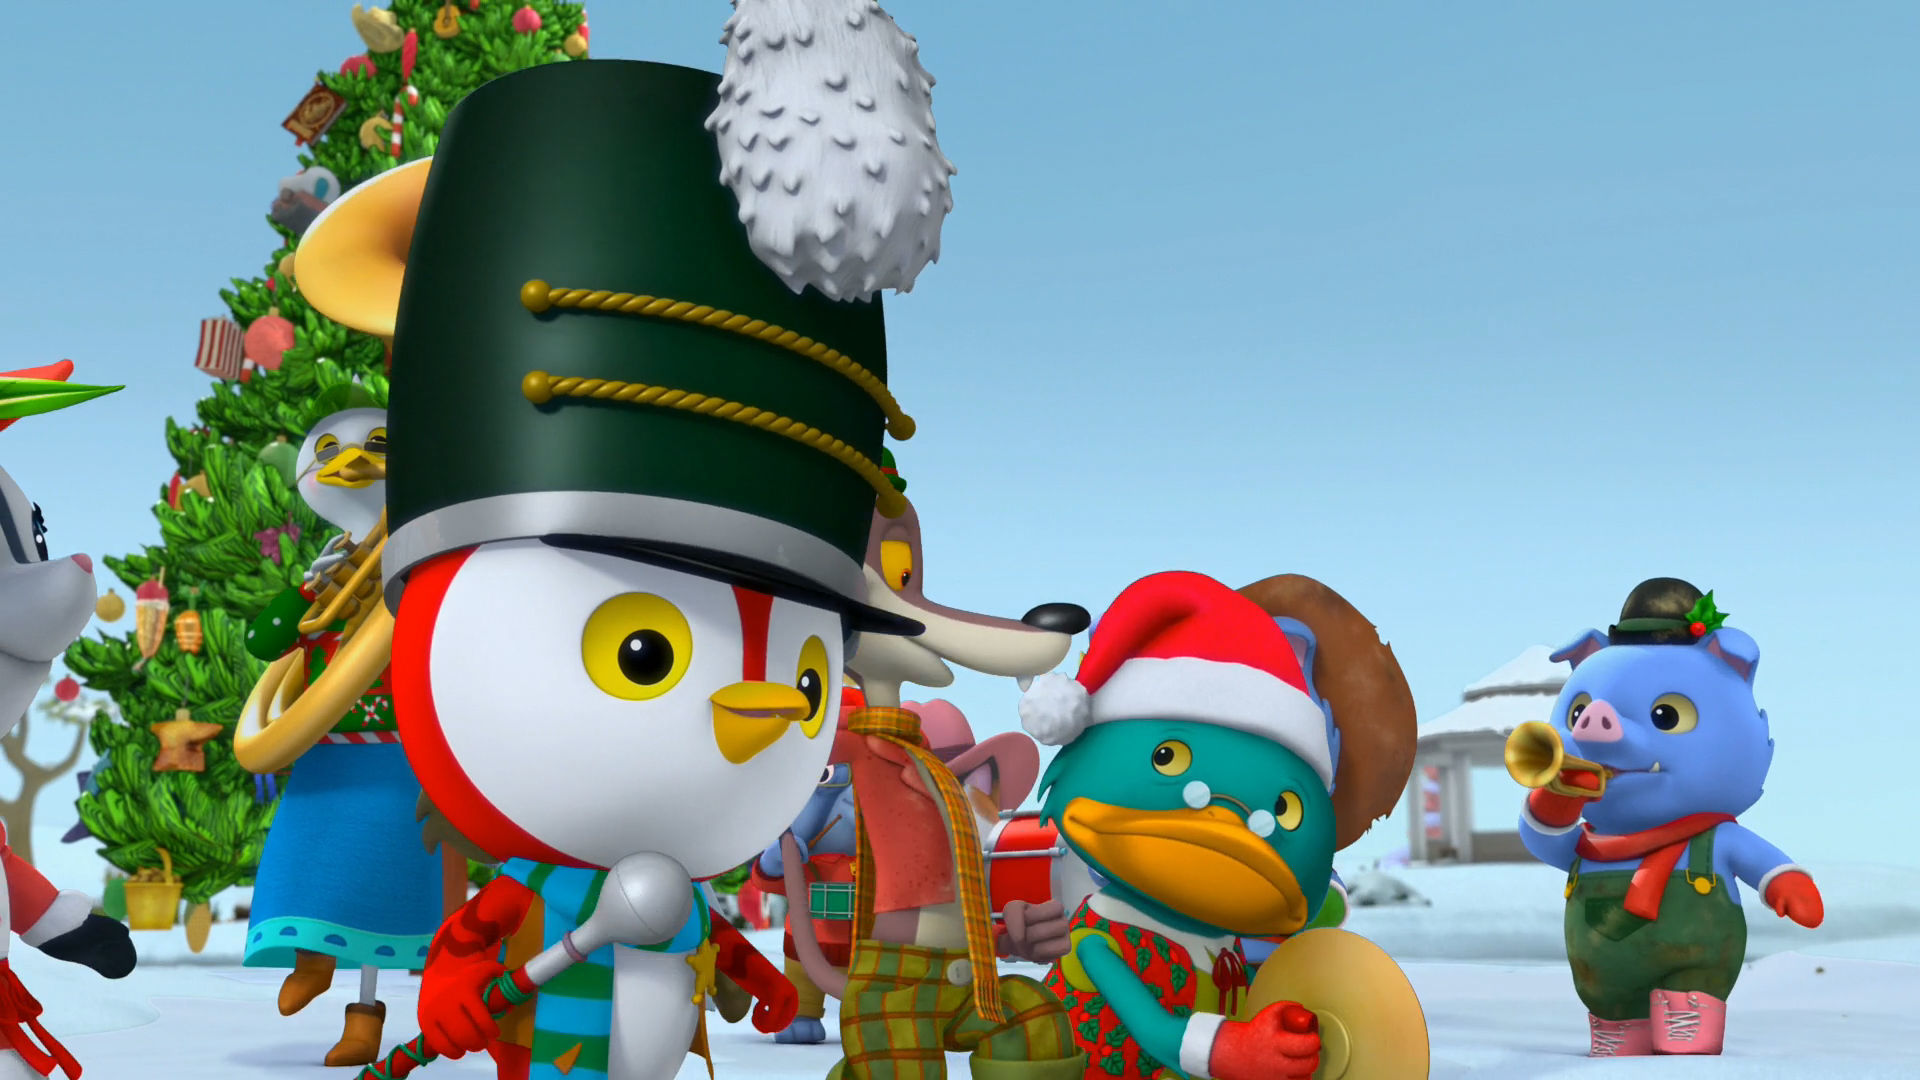 Music Video: Nice and Friendly Christmas March